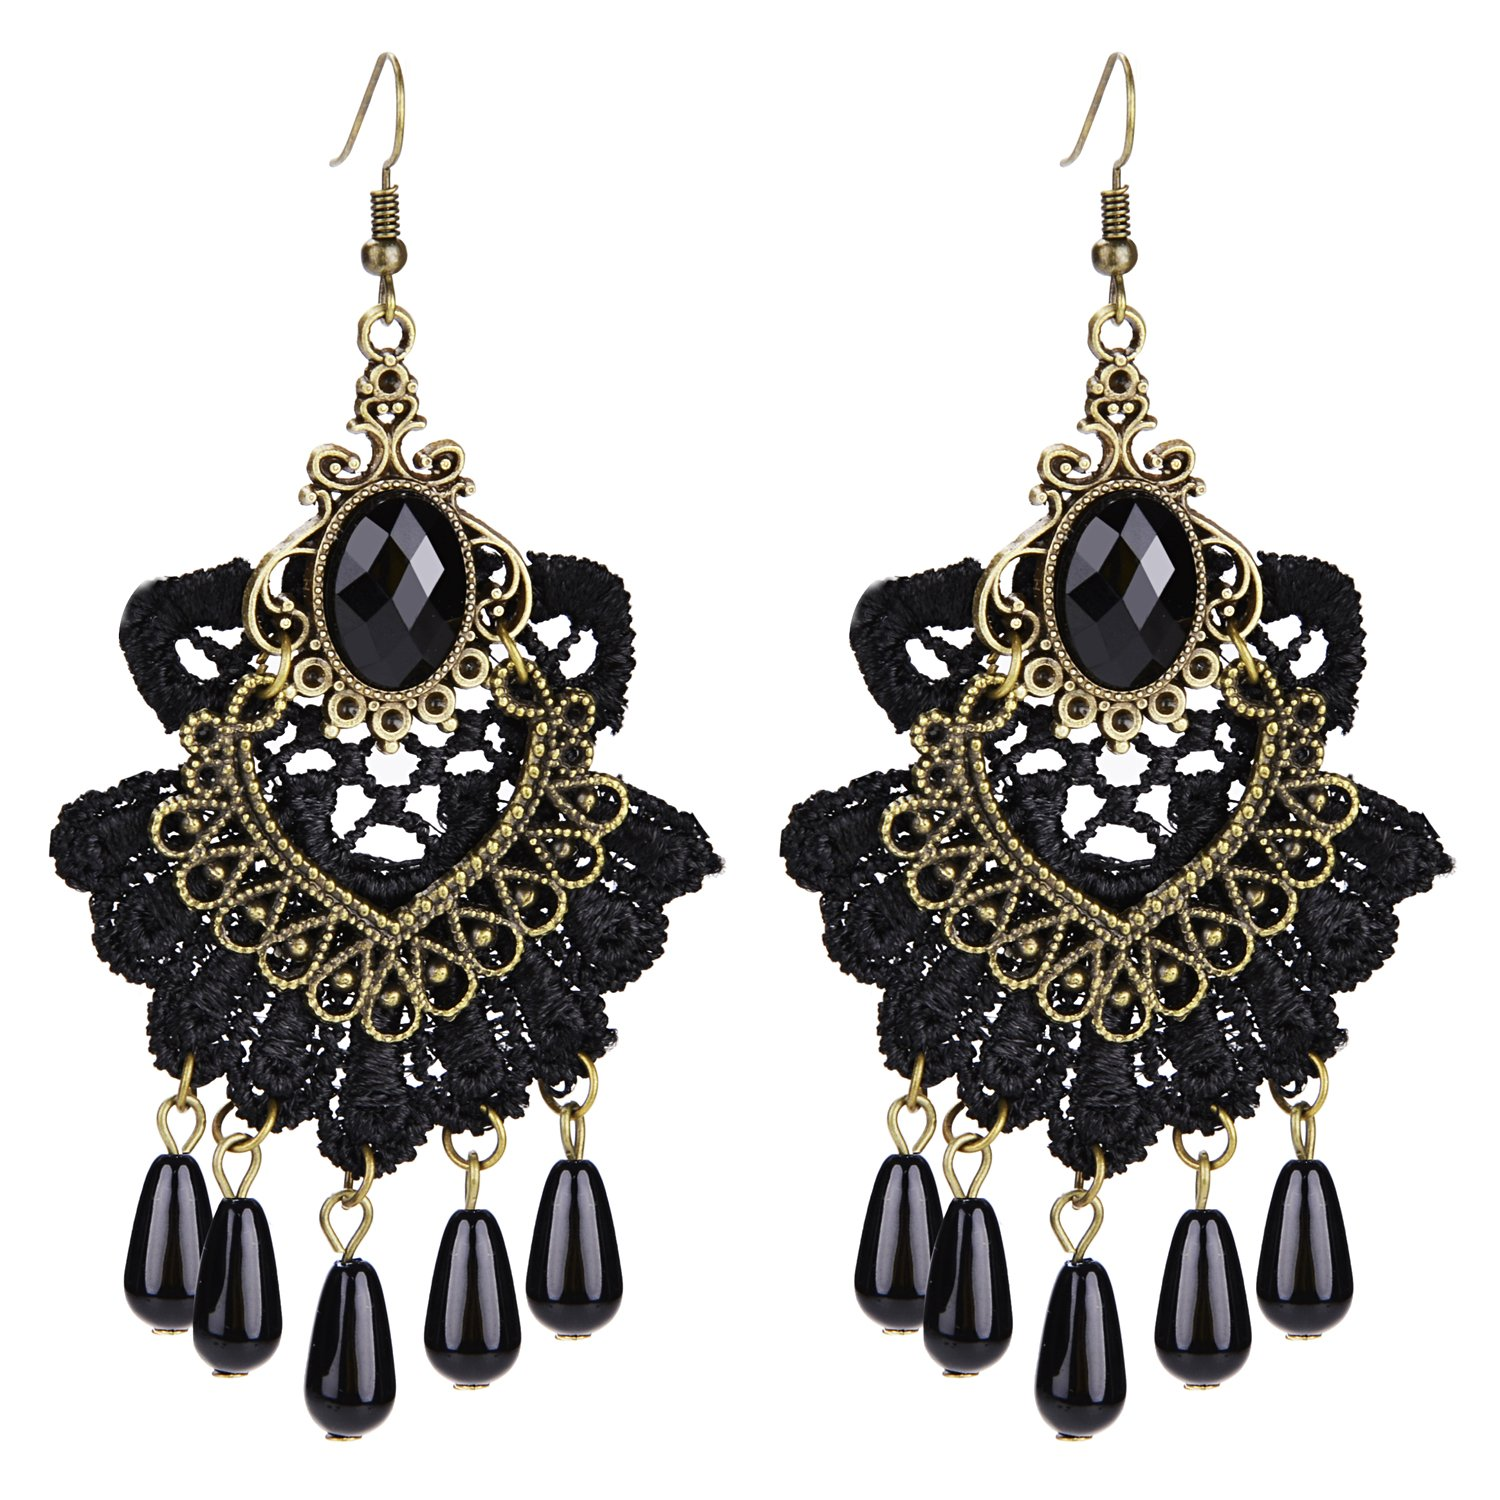 Aniwon Punk Style Wedding Party Black Lace Choker Beads Tassels Chain Pendant Necklace Earring Set for Women… by Aniwon (Image #5)